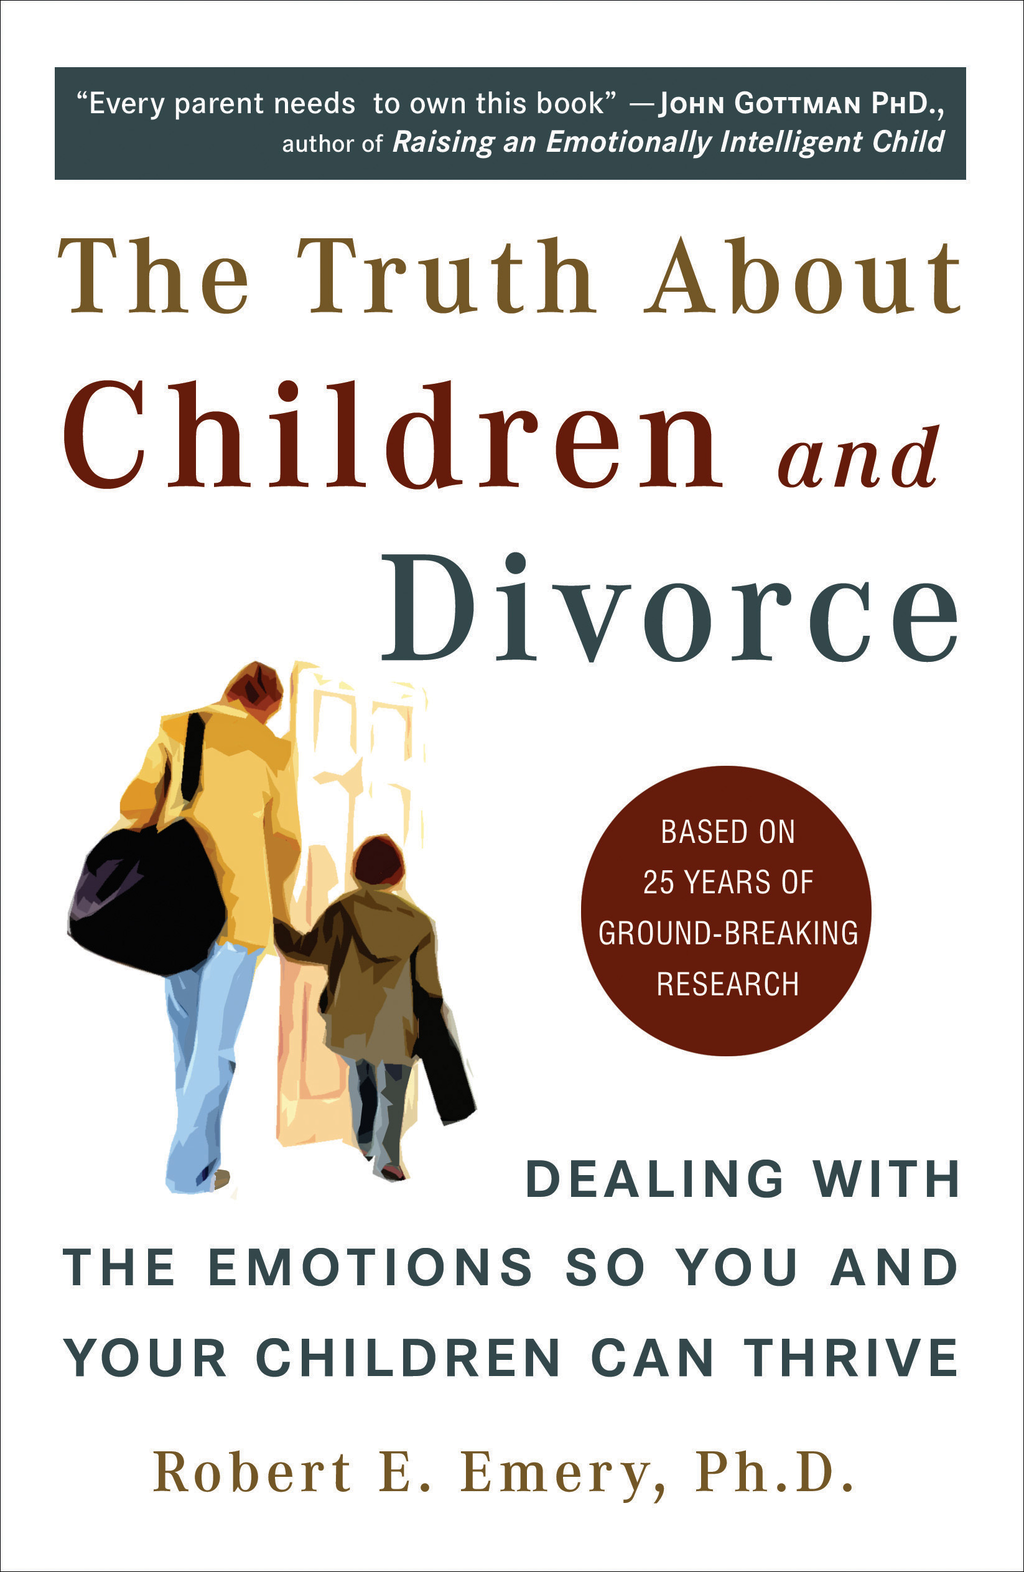 The Truth About Children and Divorce Dealing with the Emotions So You and Your Children Can Thrive